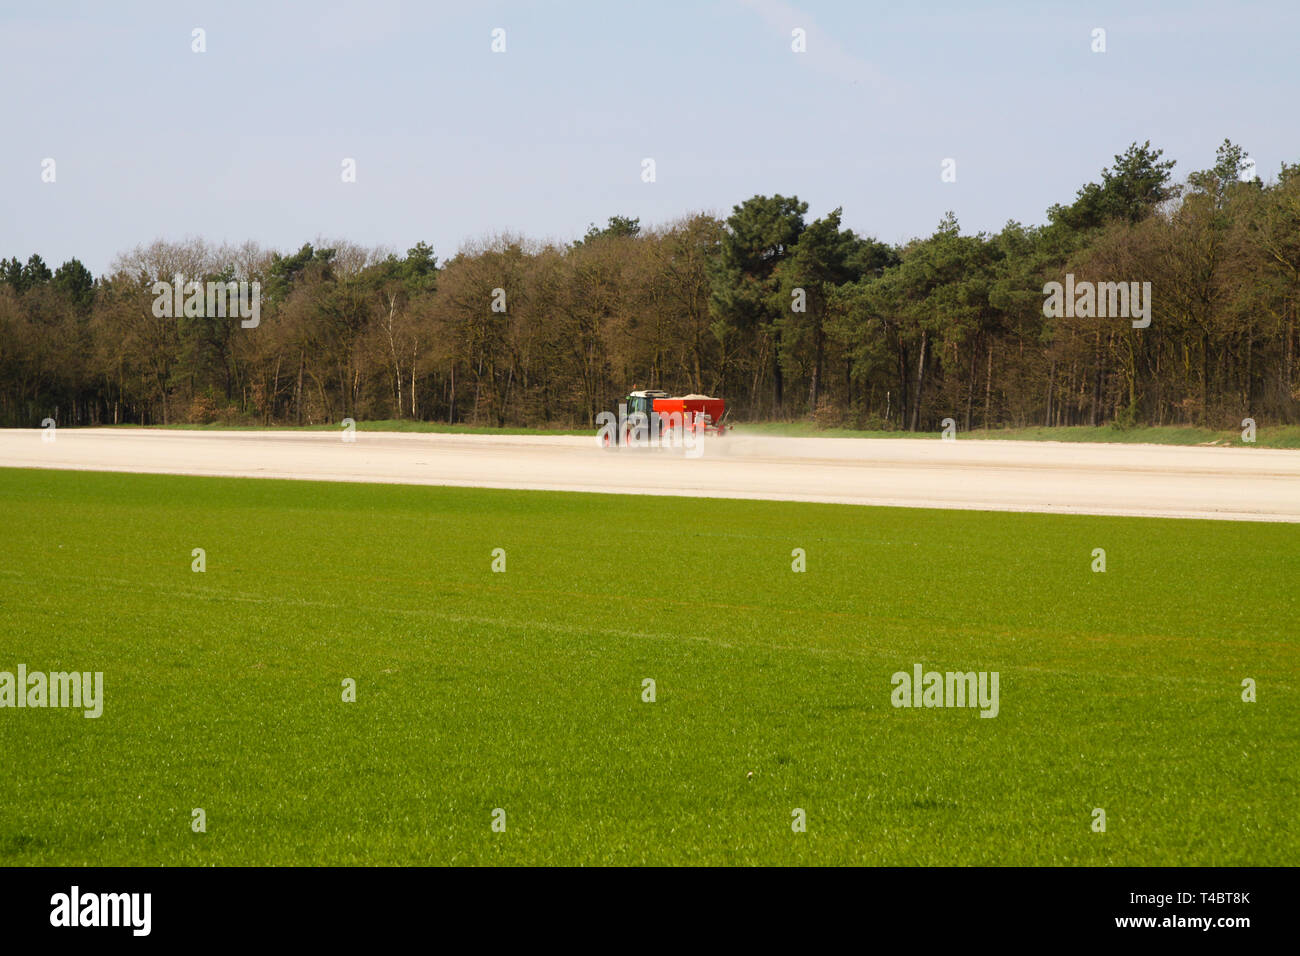 ROERMOND, NETHERLANDS - MARCH 30. 2019: Chalk fertilizer application by tractor with spreader to prepare the field for growing grass lawn - Stock Image